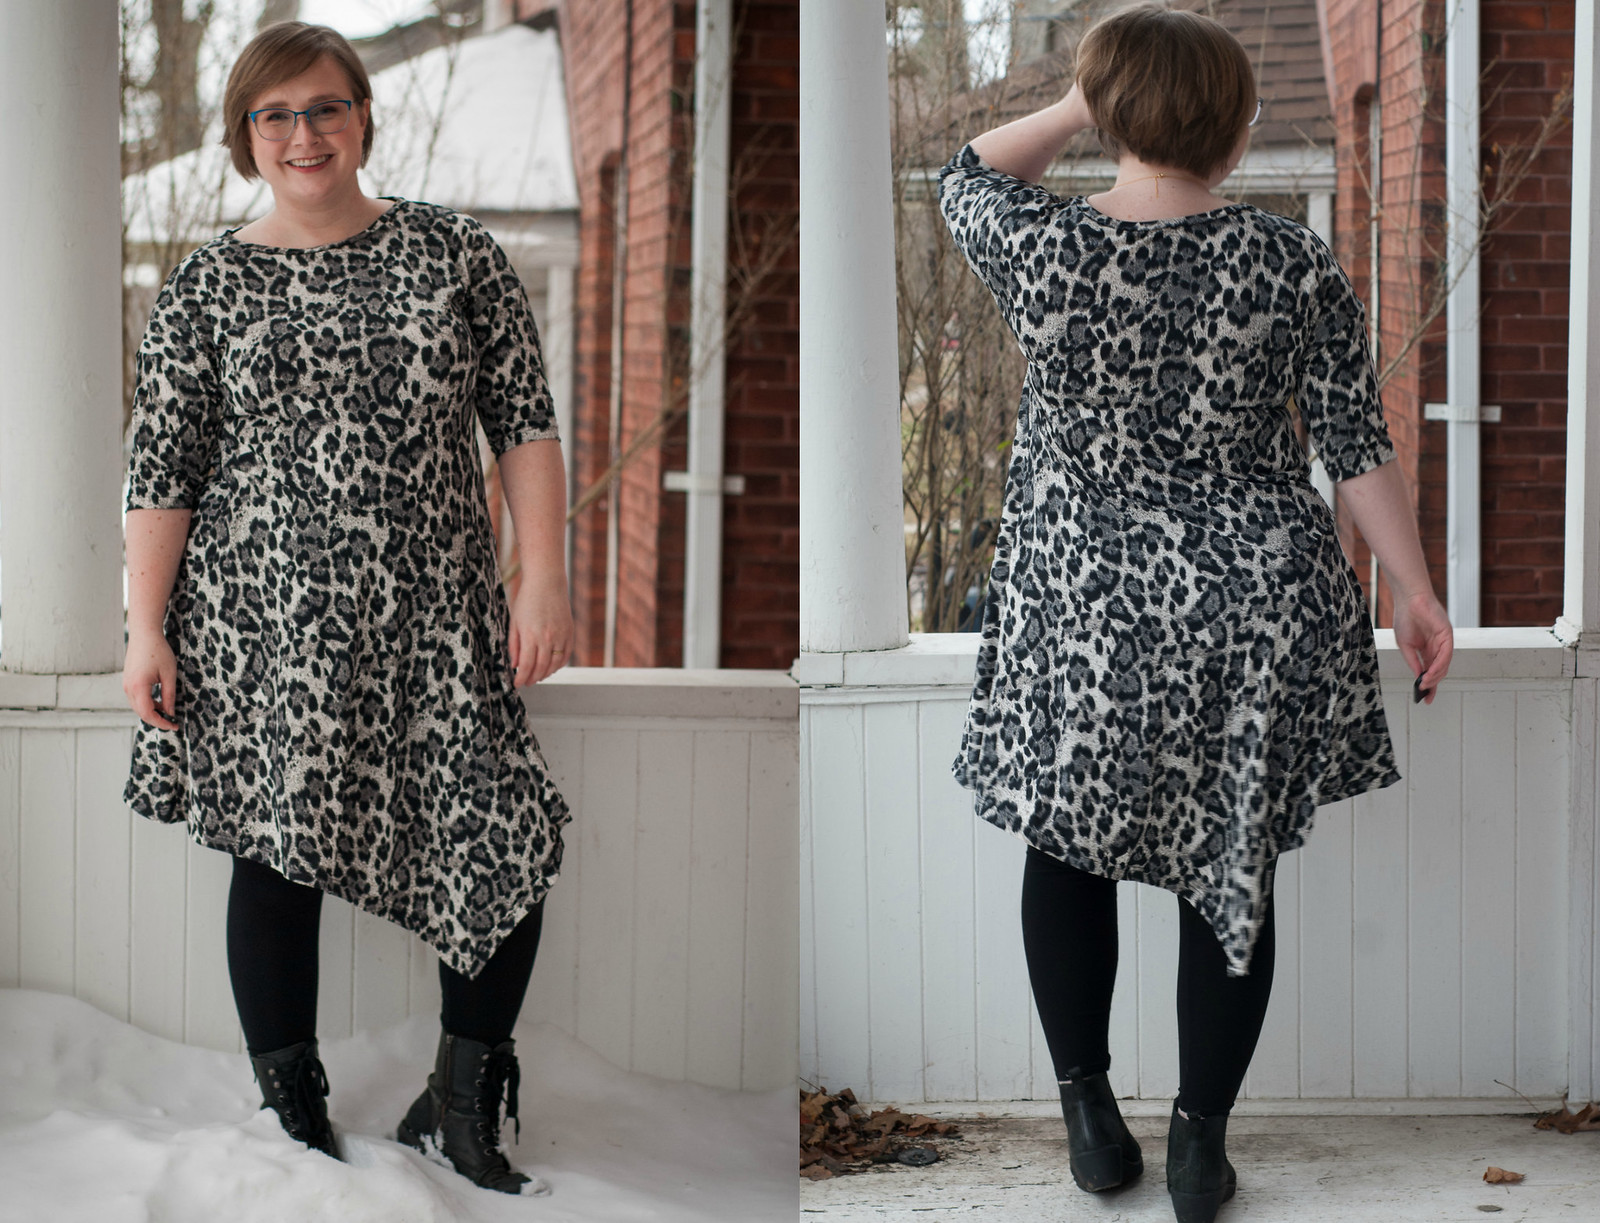 Burda Leopard Dress